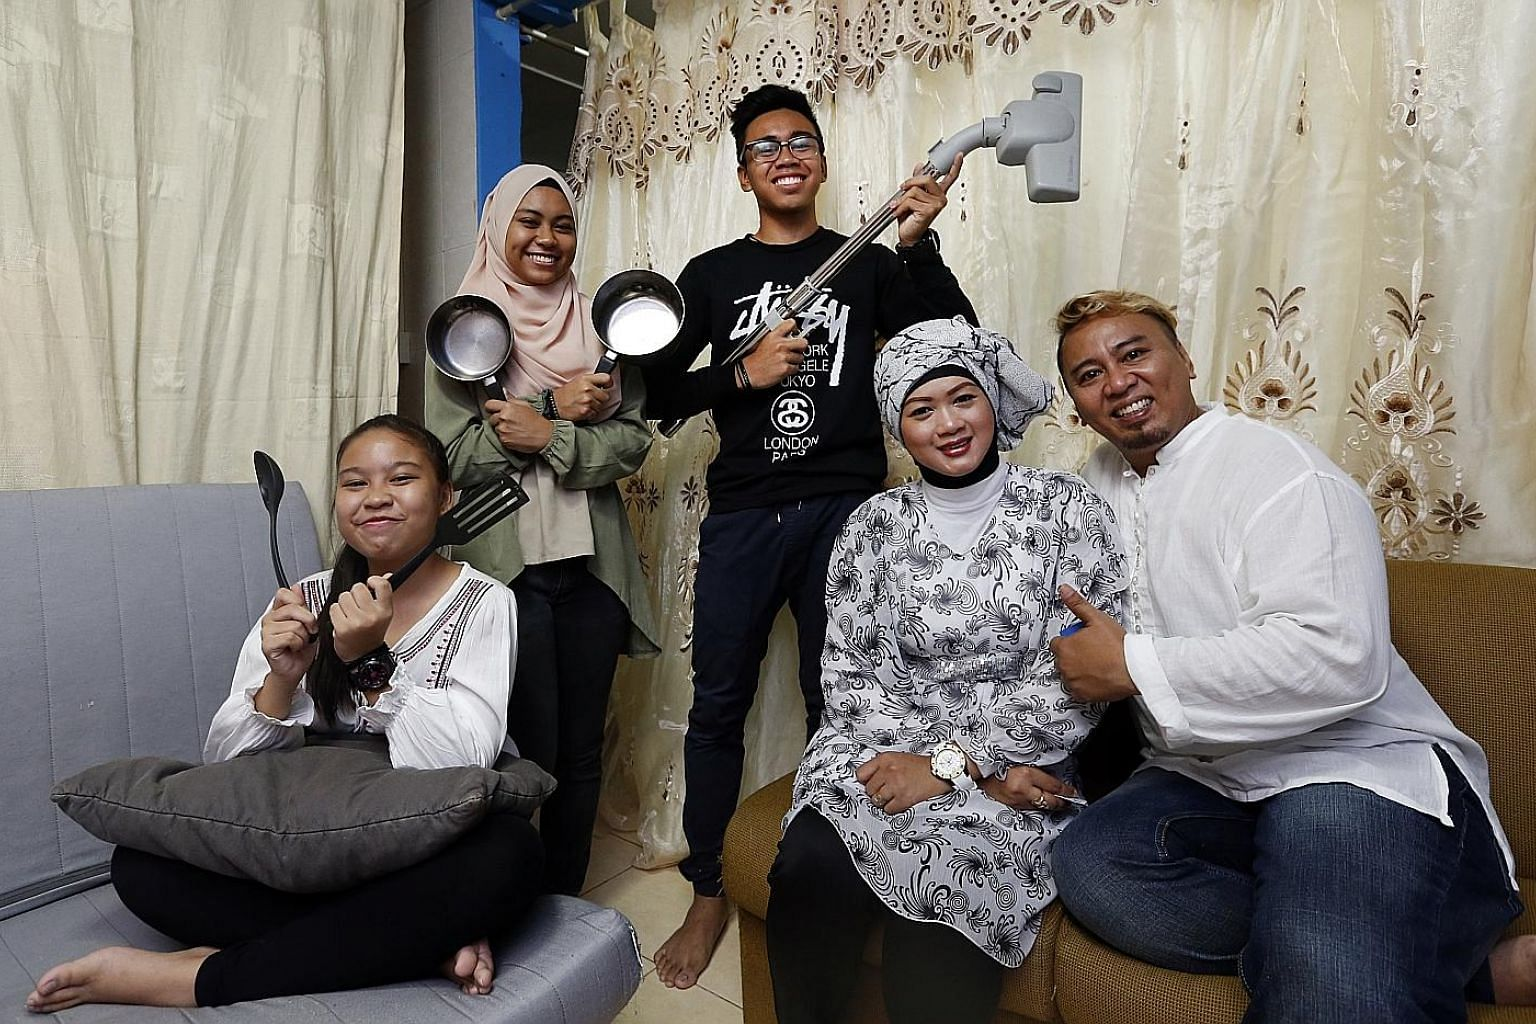 Mr Erwan Agos and his wife, Ms Cici Rahayu, get help around the house from children (from left) Mellisha, Melwani and Ermanto.